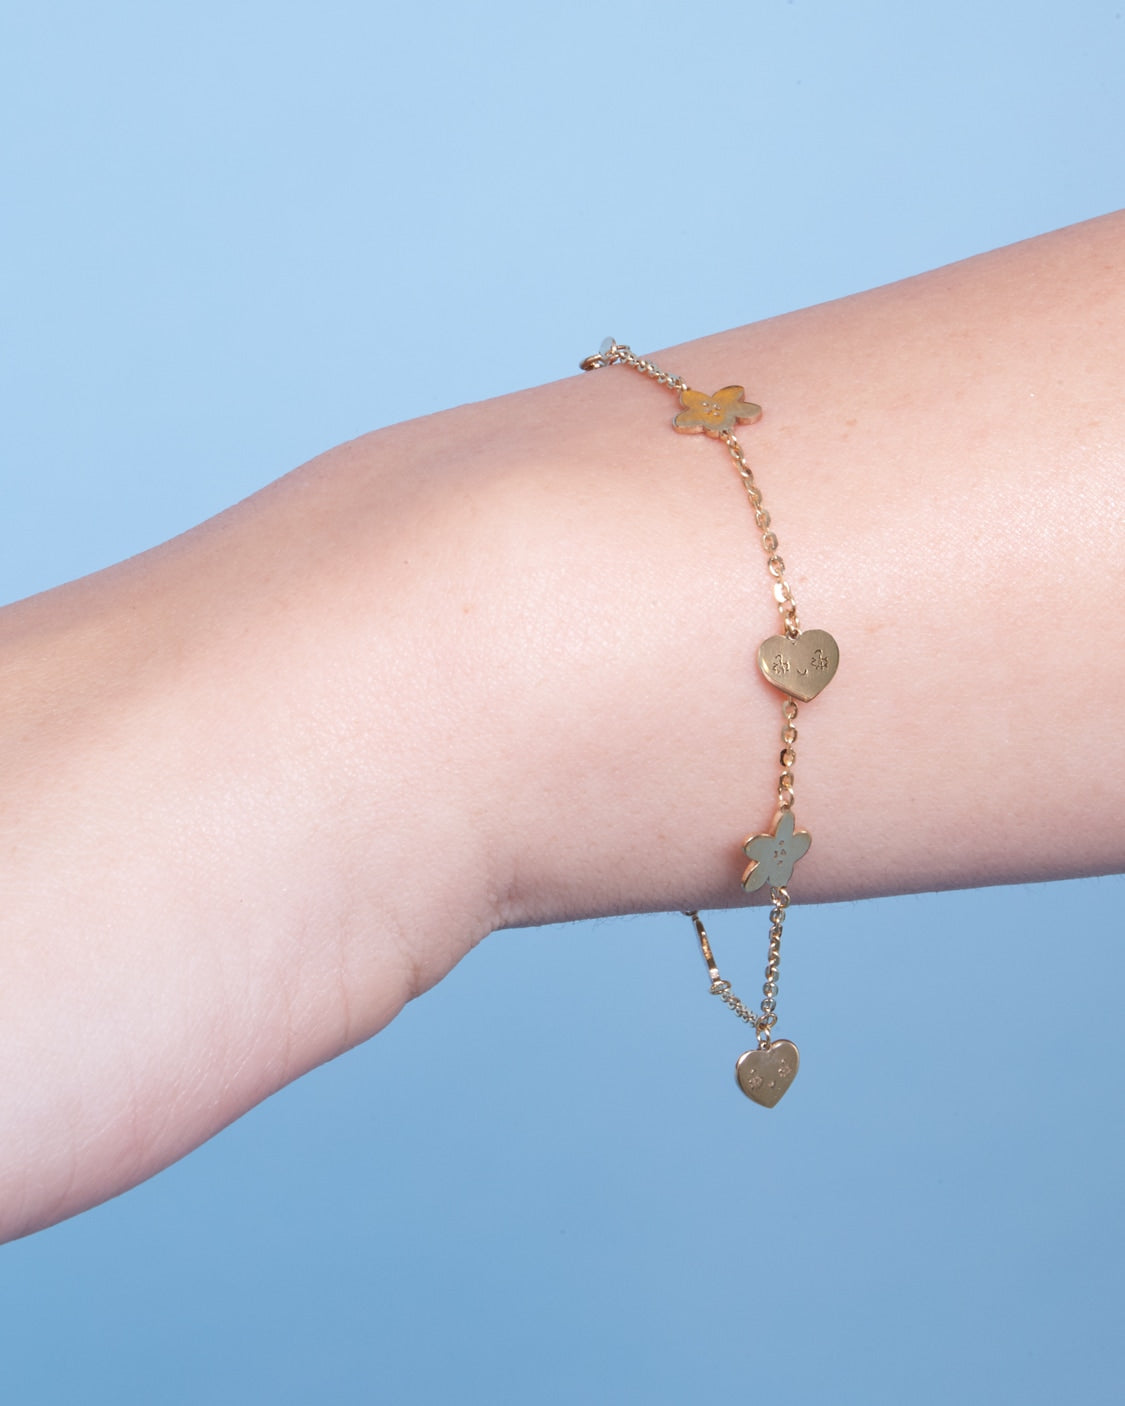 LOVES ME NOT BRACELET 9kt gold